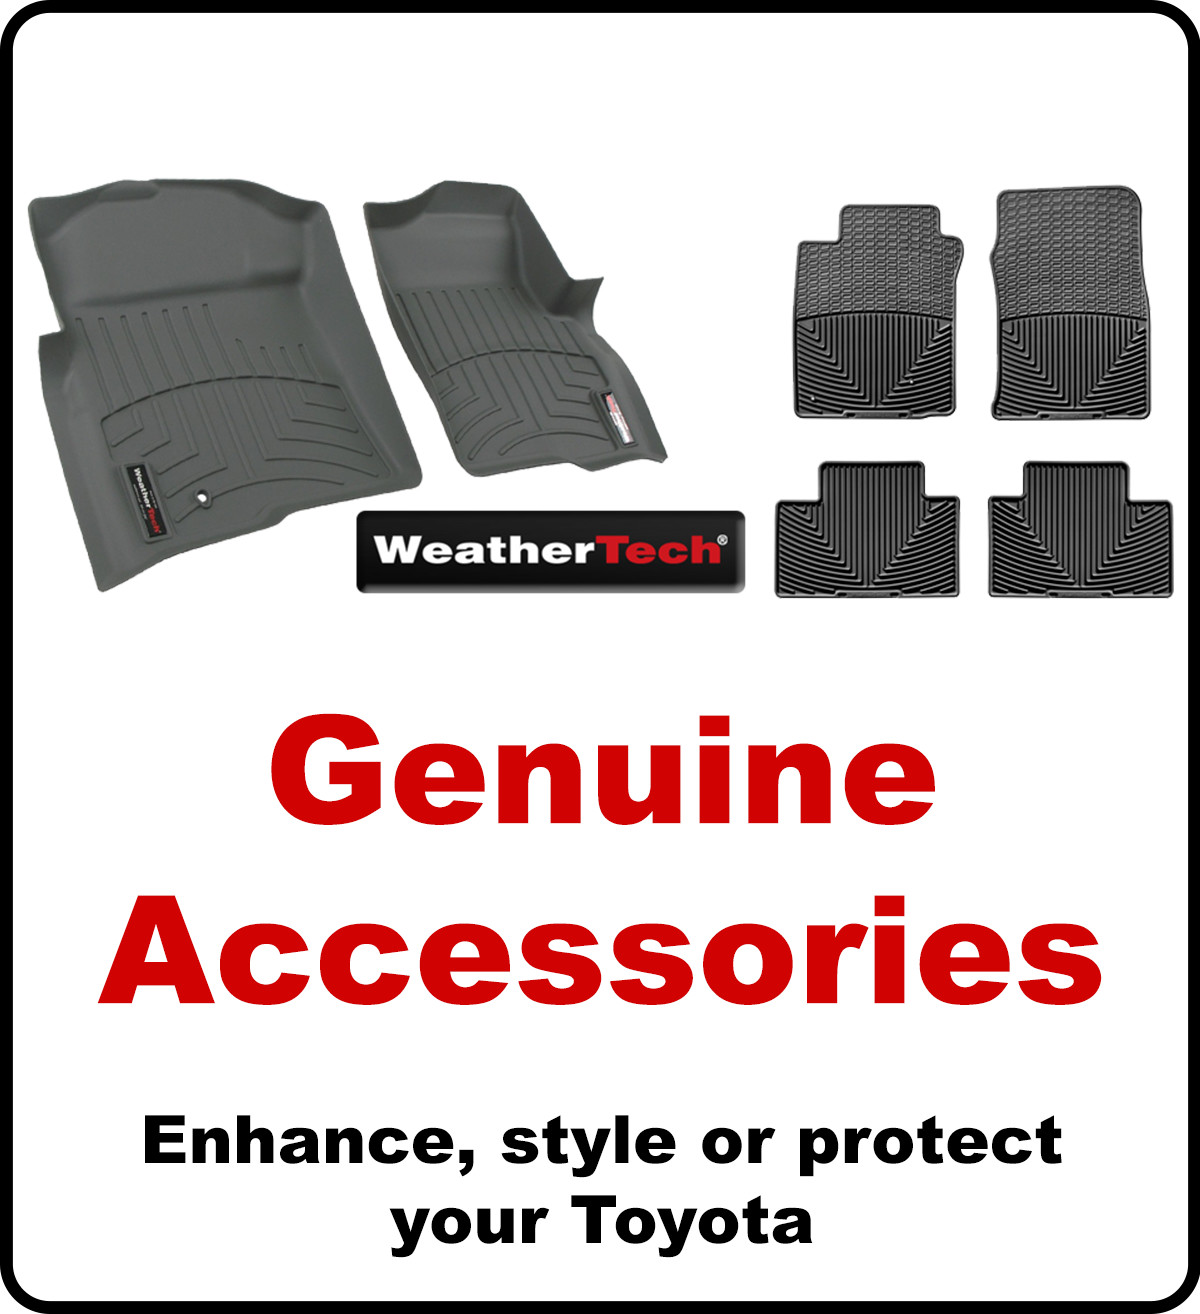 Genuine Accessories